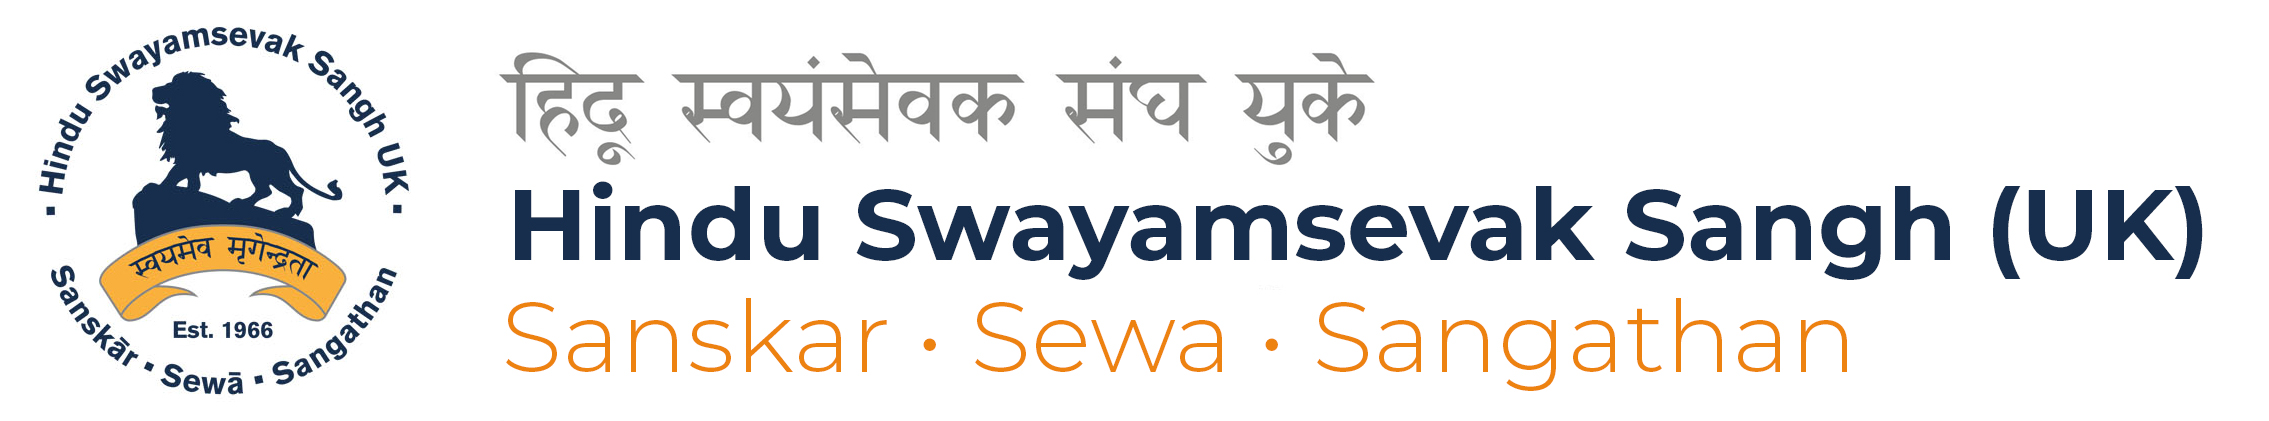 HSS UK | Hindu Swayamsevak Sangh UK